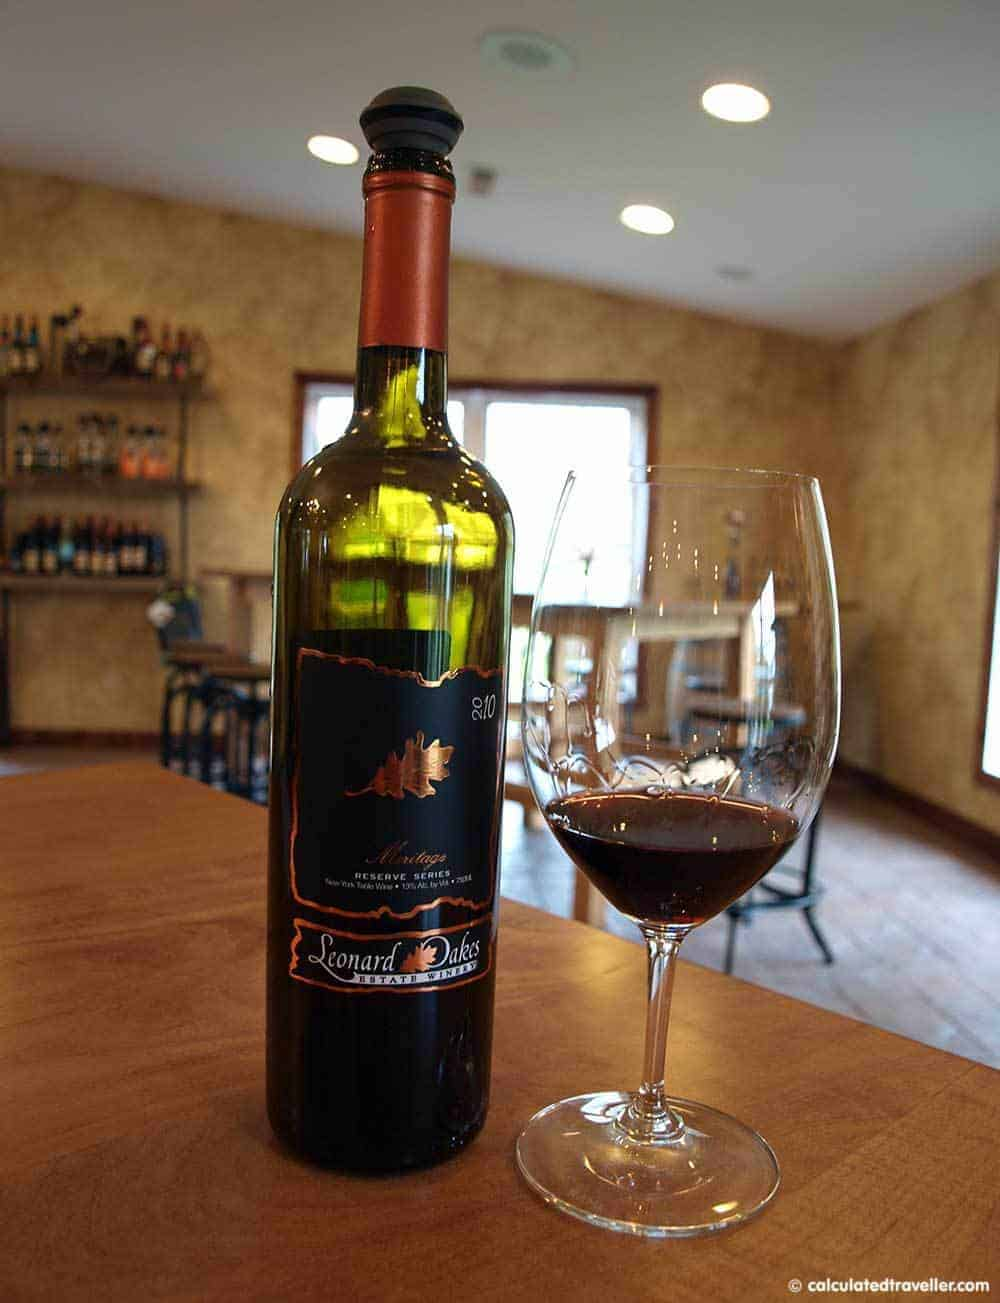 Leonard Oakes Estate Winery, Beer and Wine in Buffalo Niagara USA Calculated Traveller